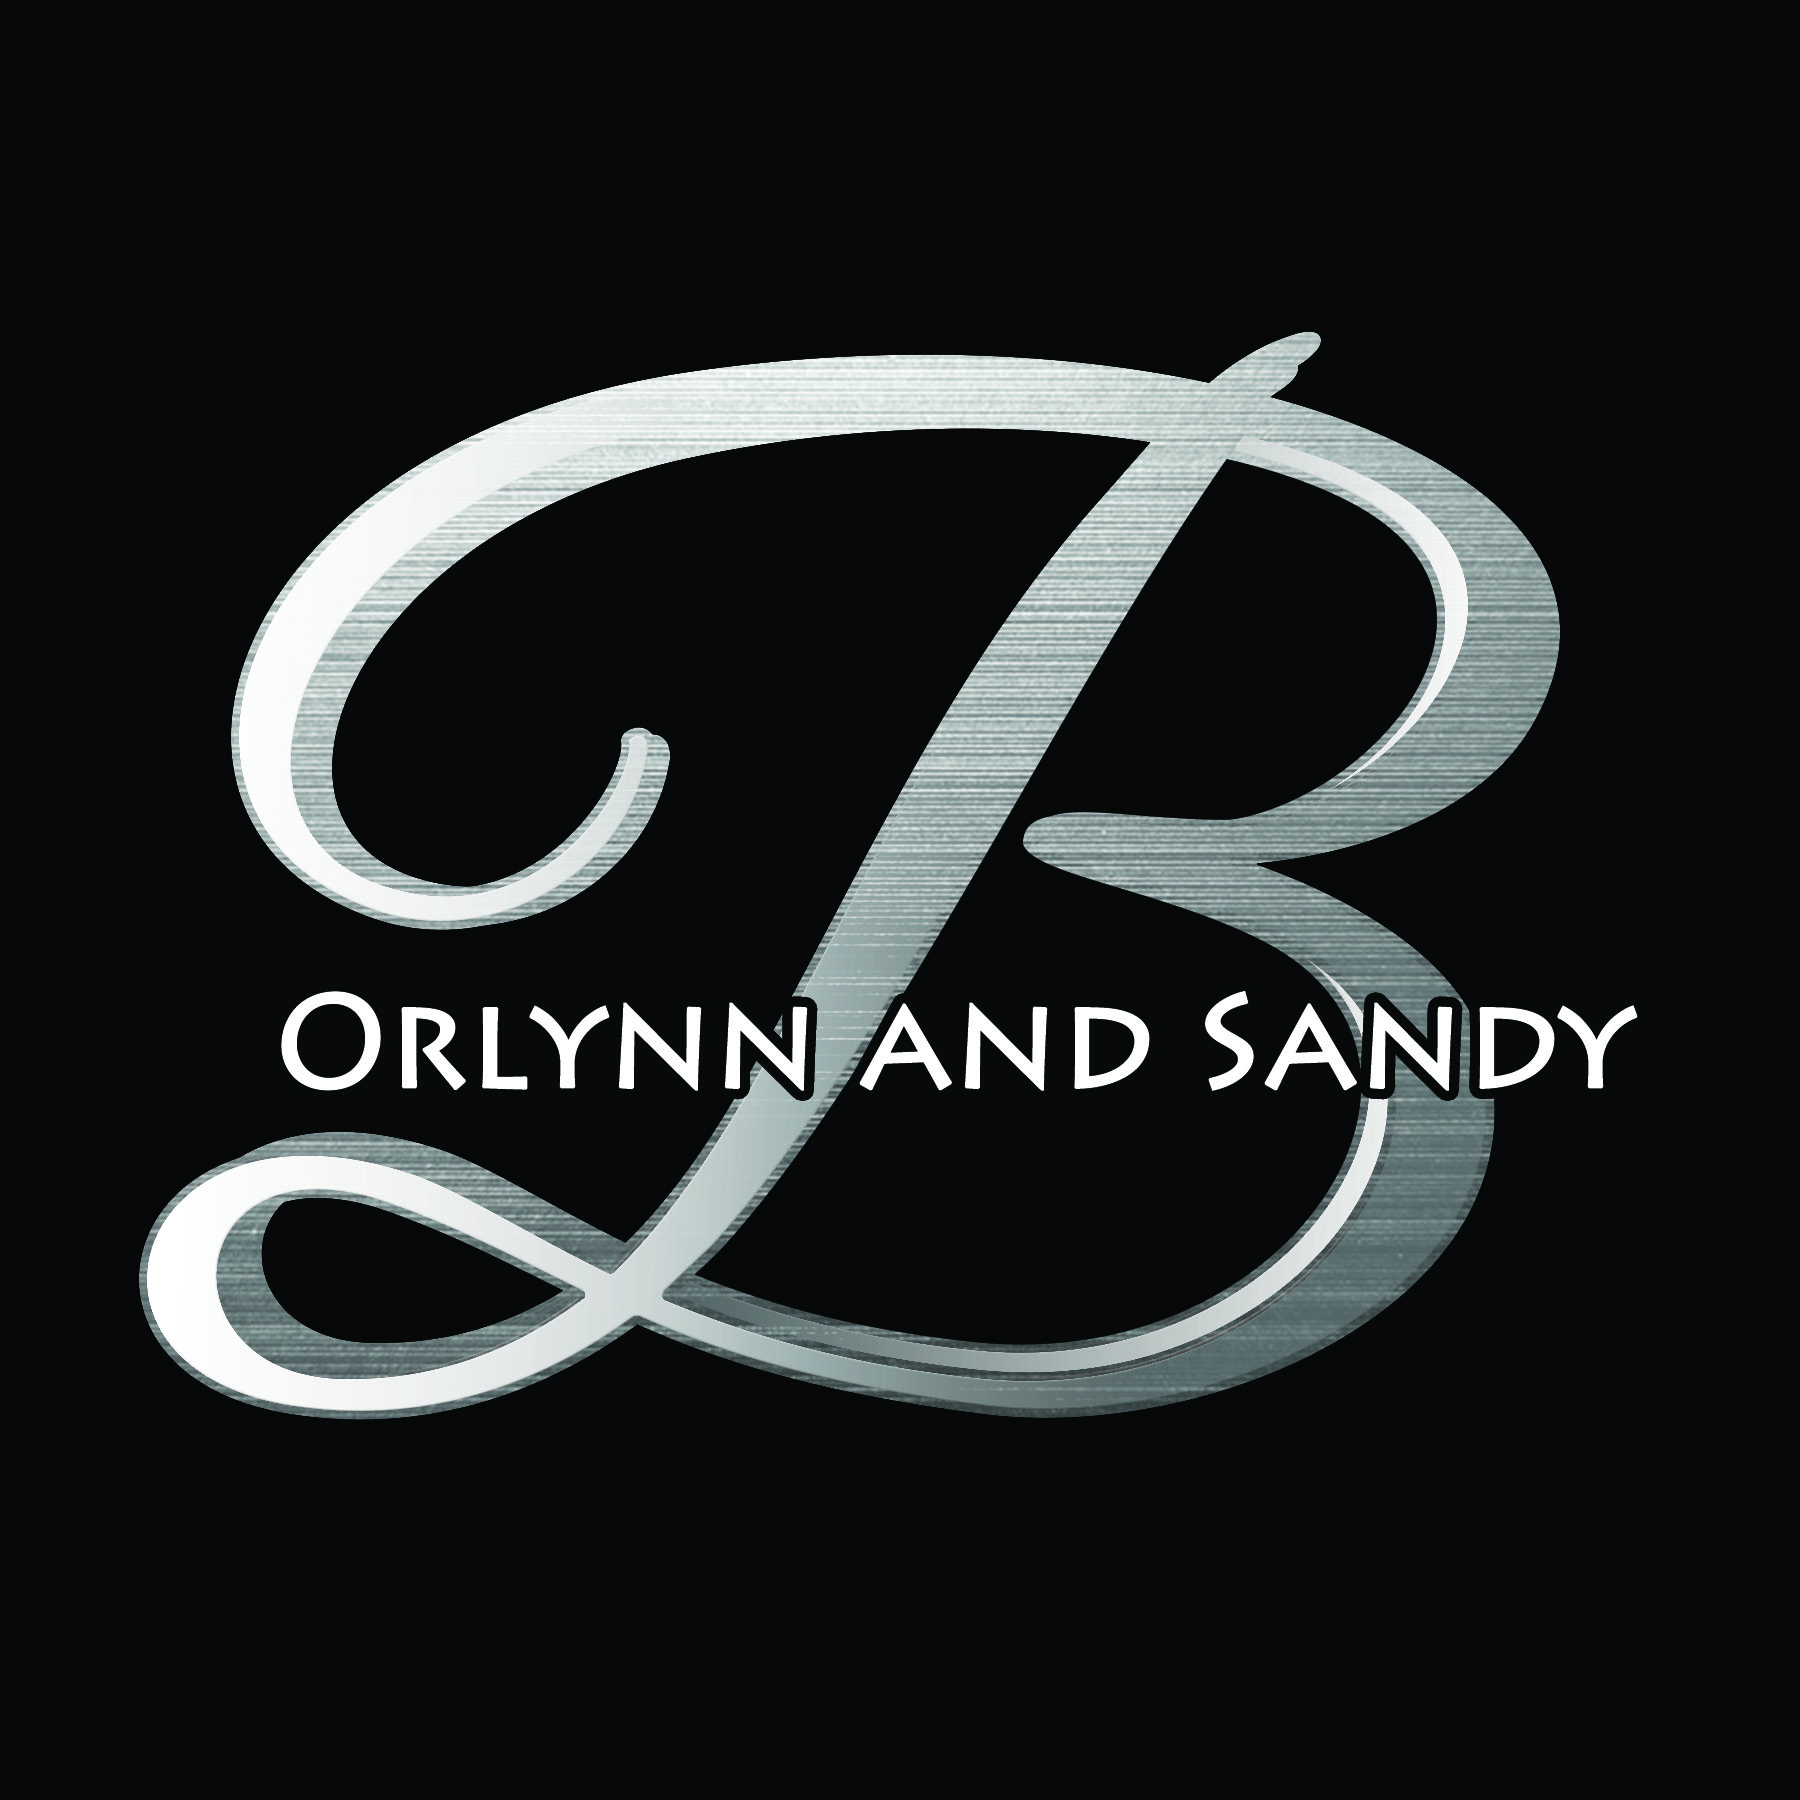 ORLYNN AND SANDY MONOGRAM 2.jpg